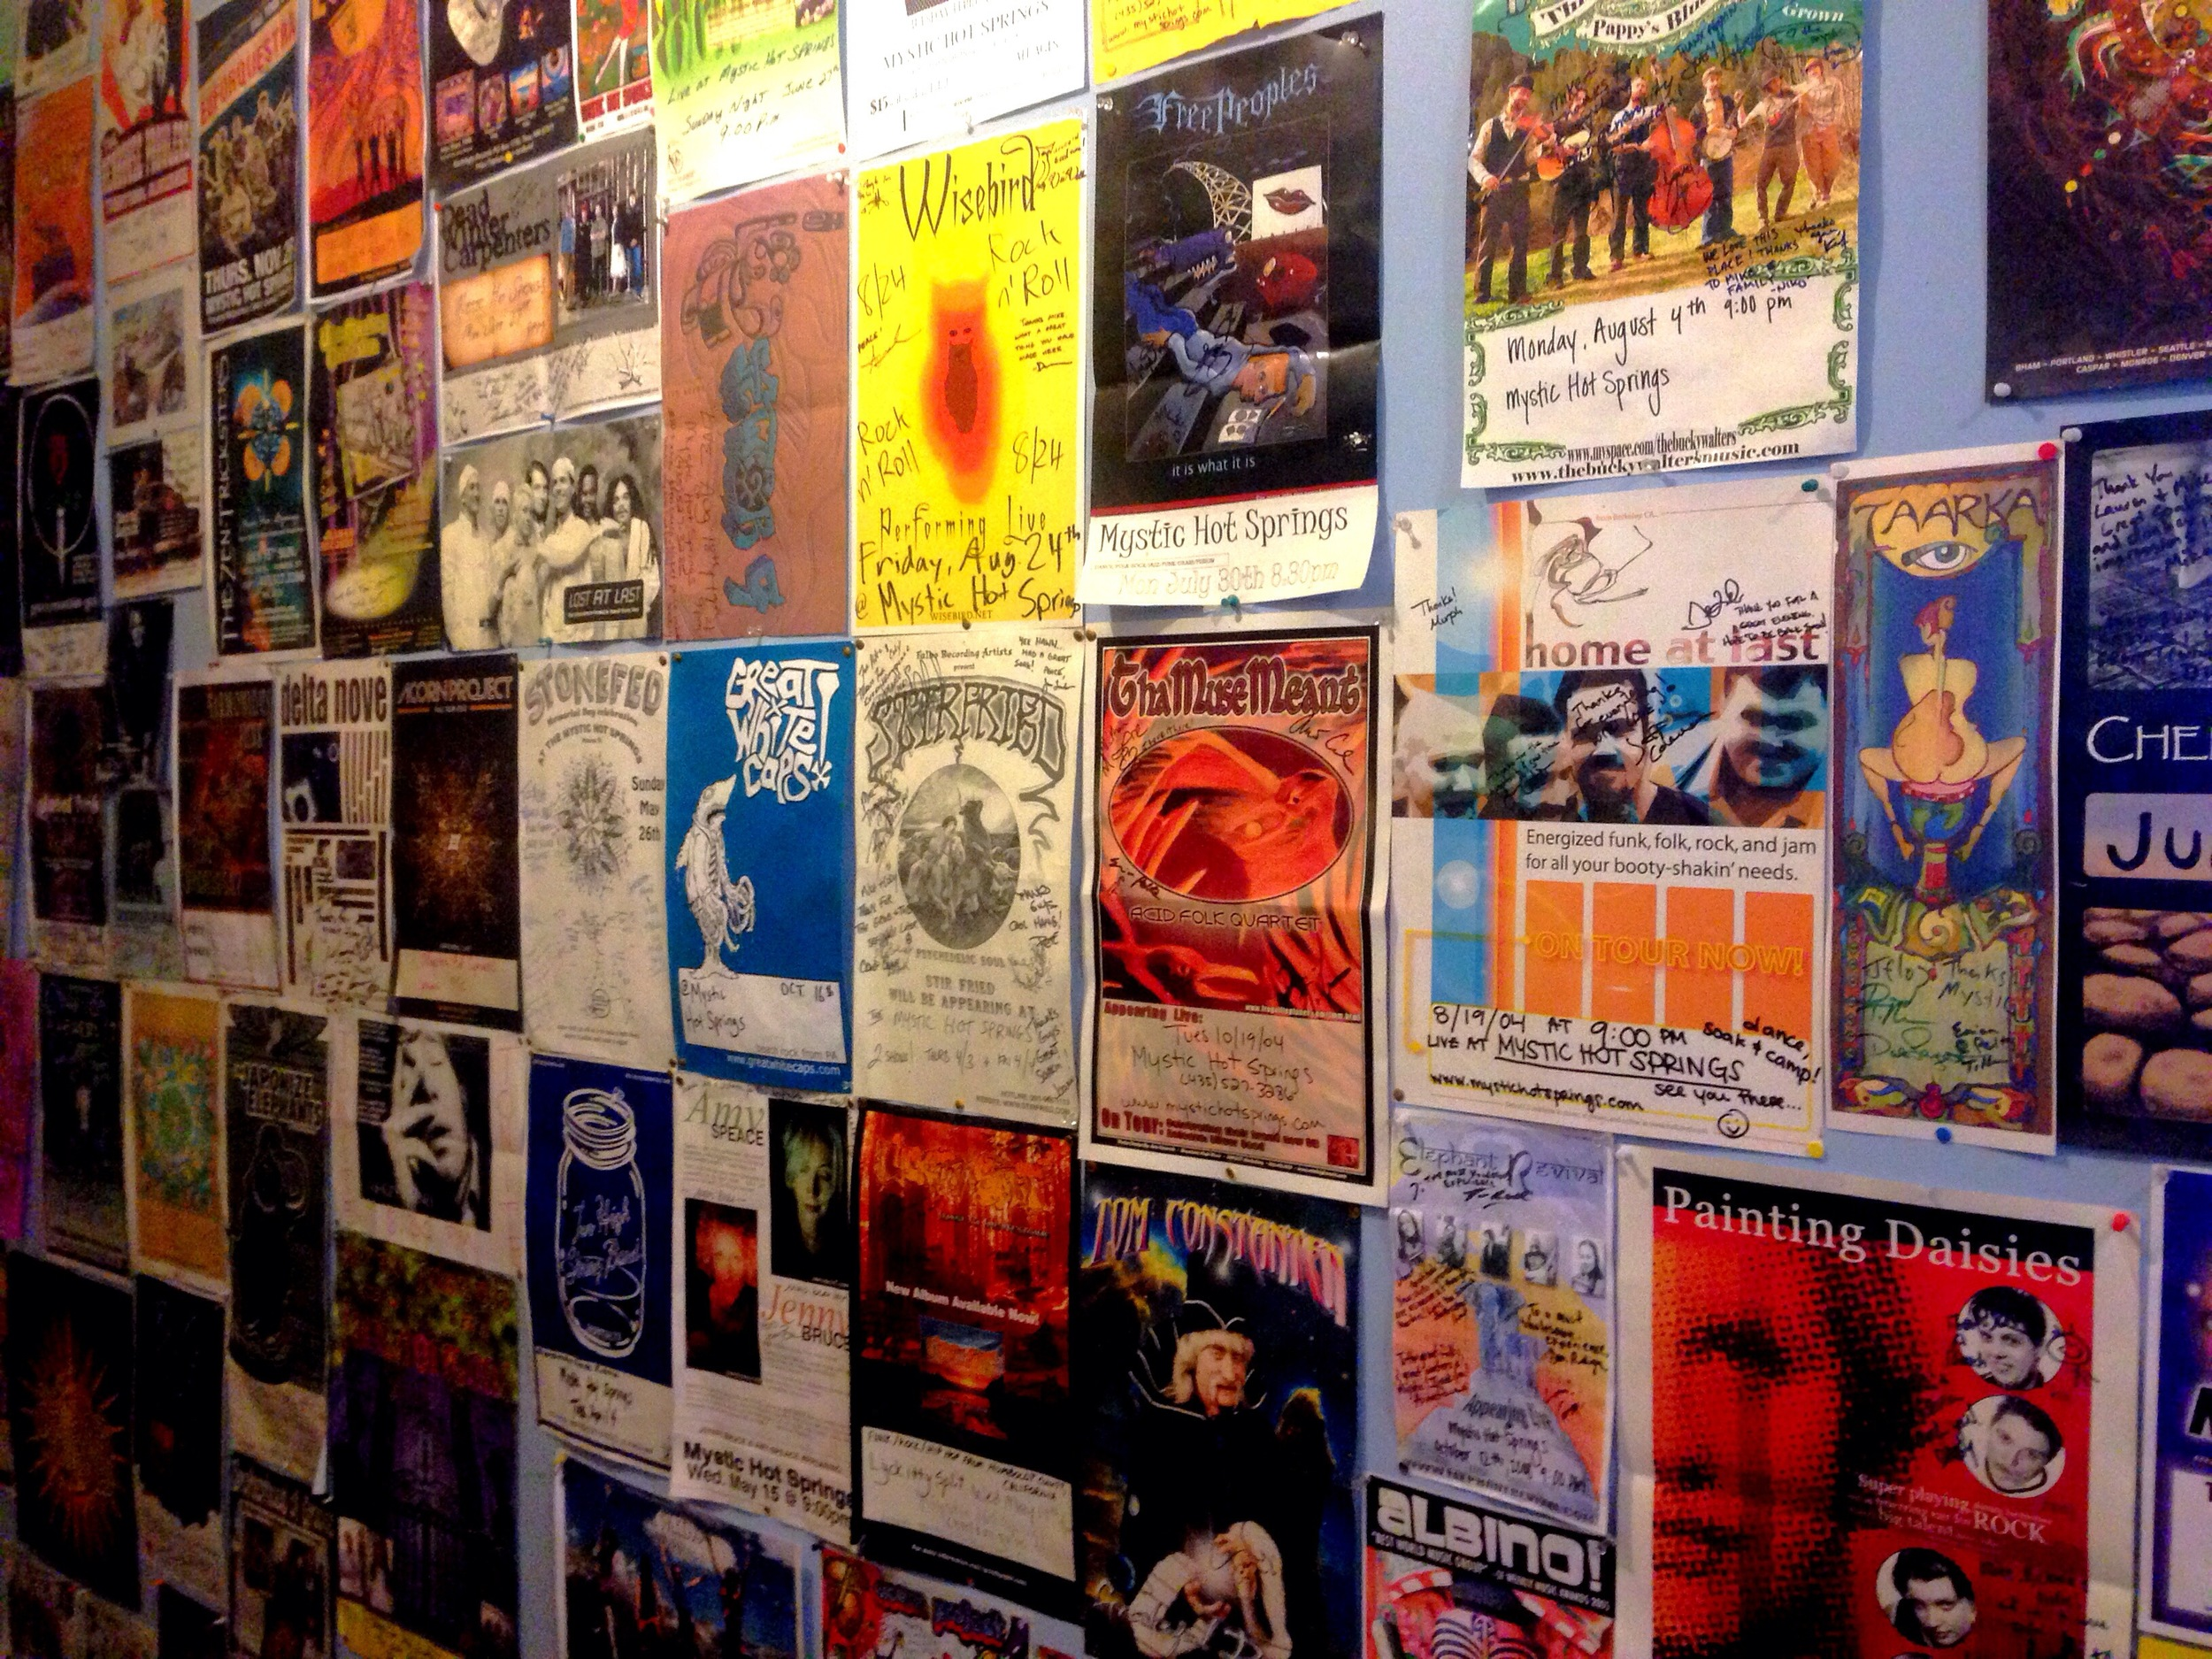 Mystic Wall of Fame